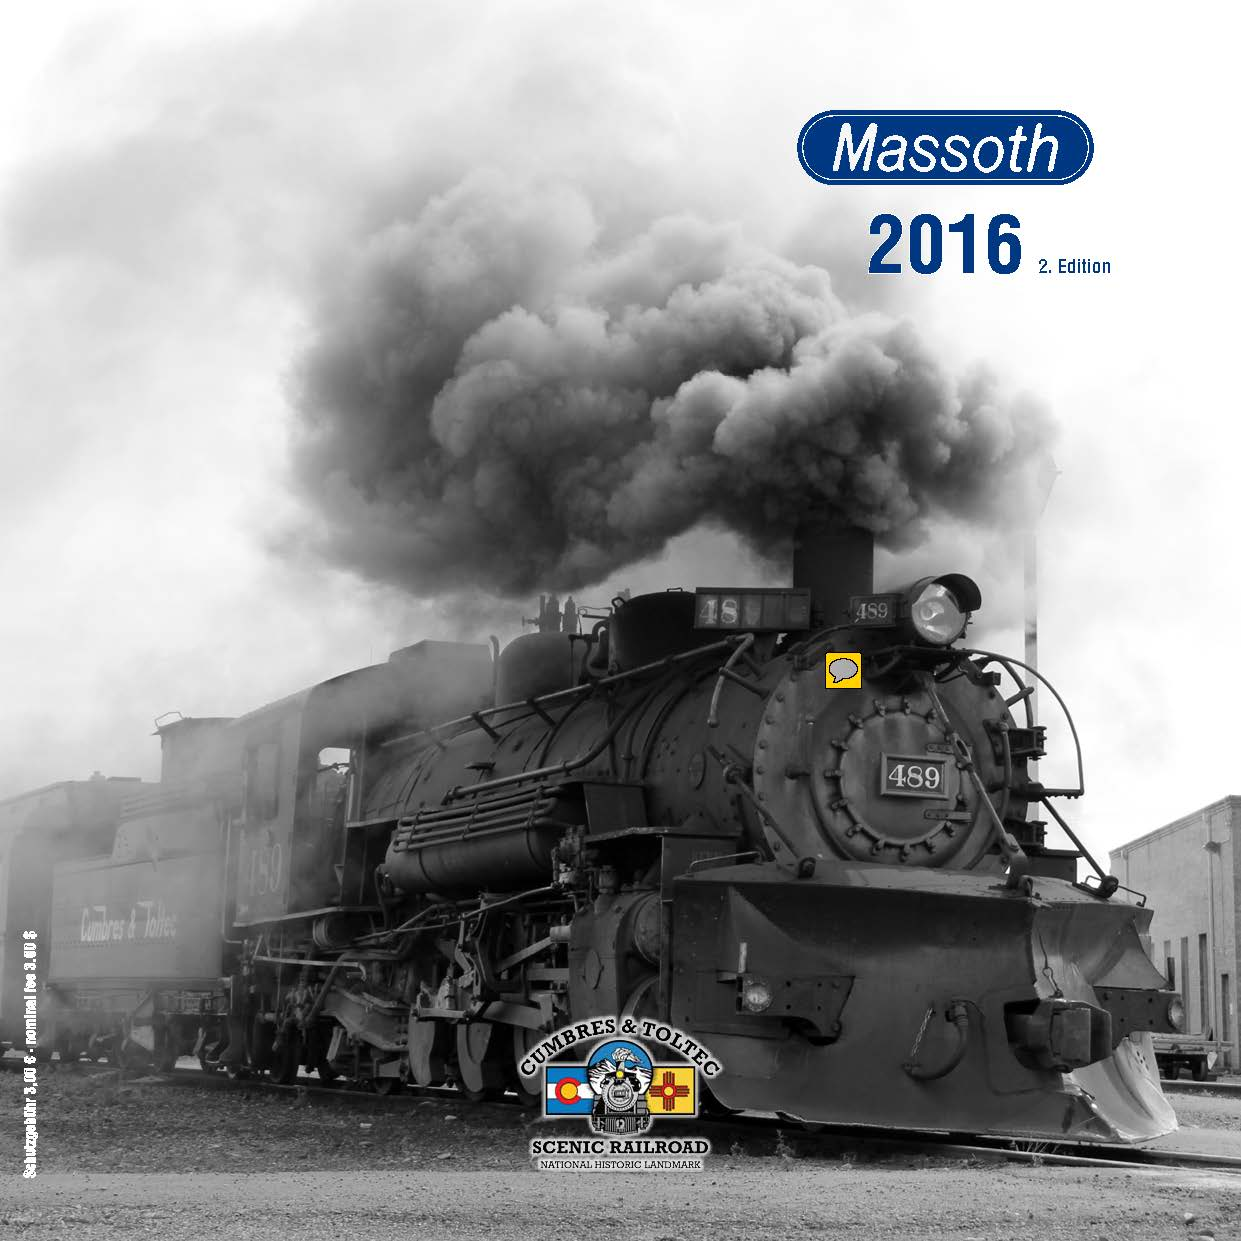 Massoth Electronics 2016 Product Catalog